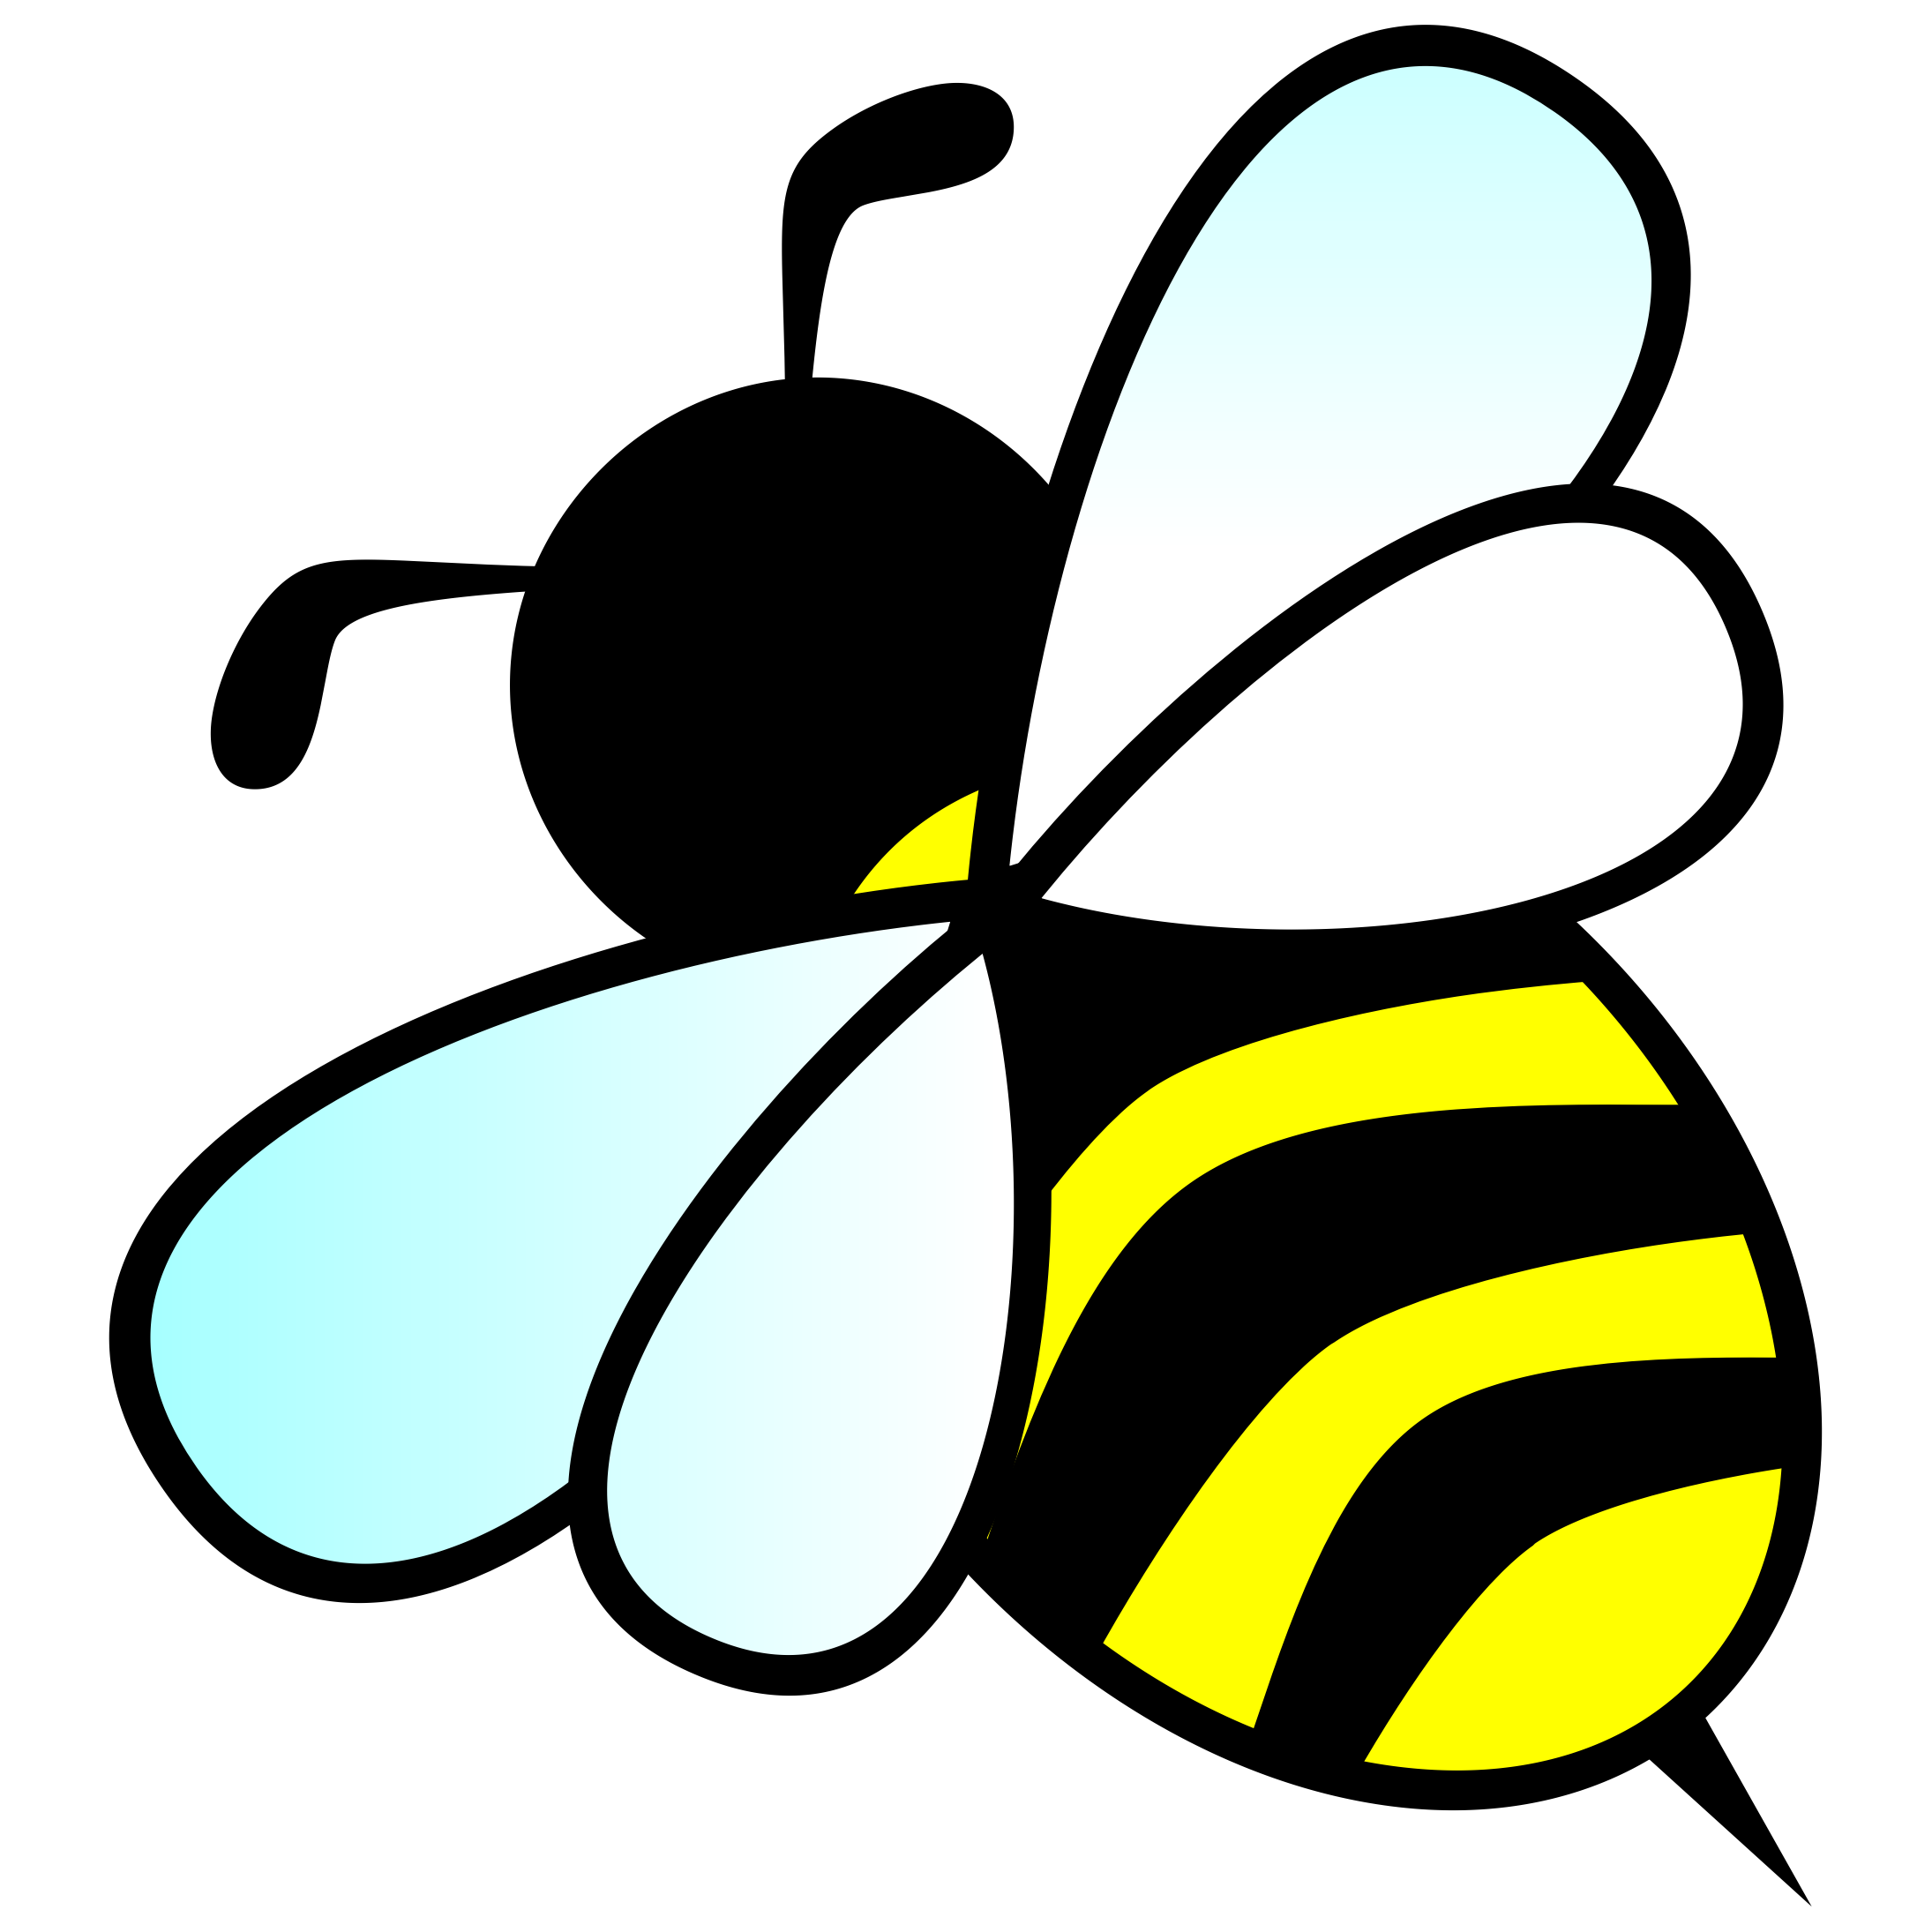 Bumble bee outline free. Bumblebee clipart printable